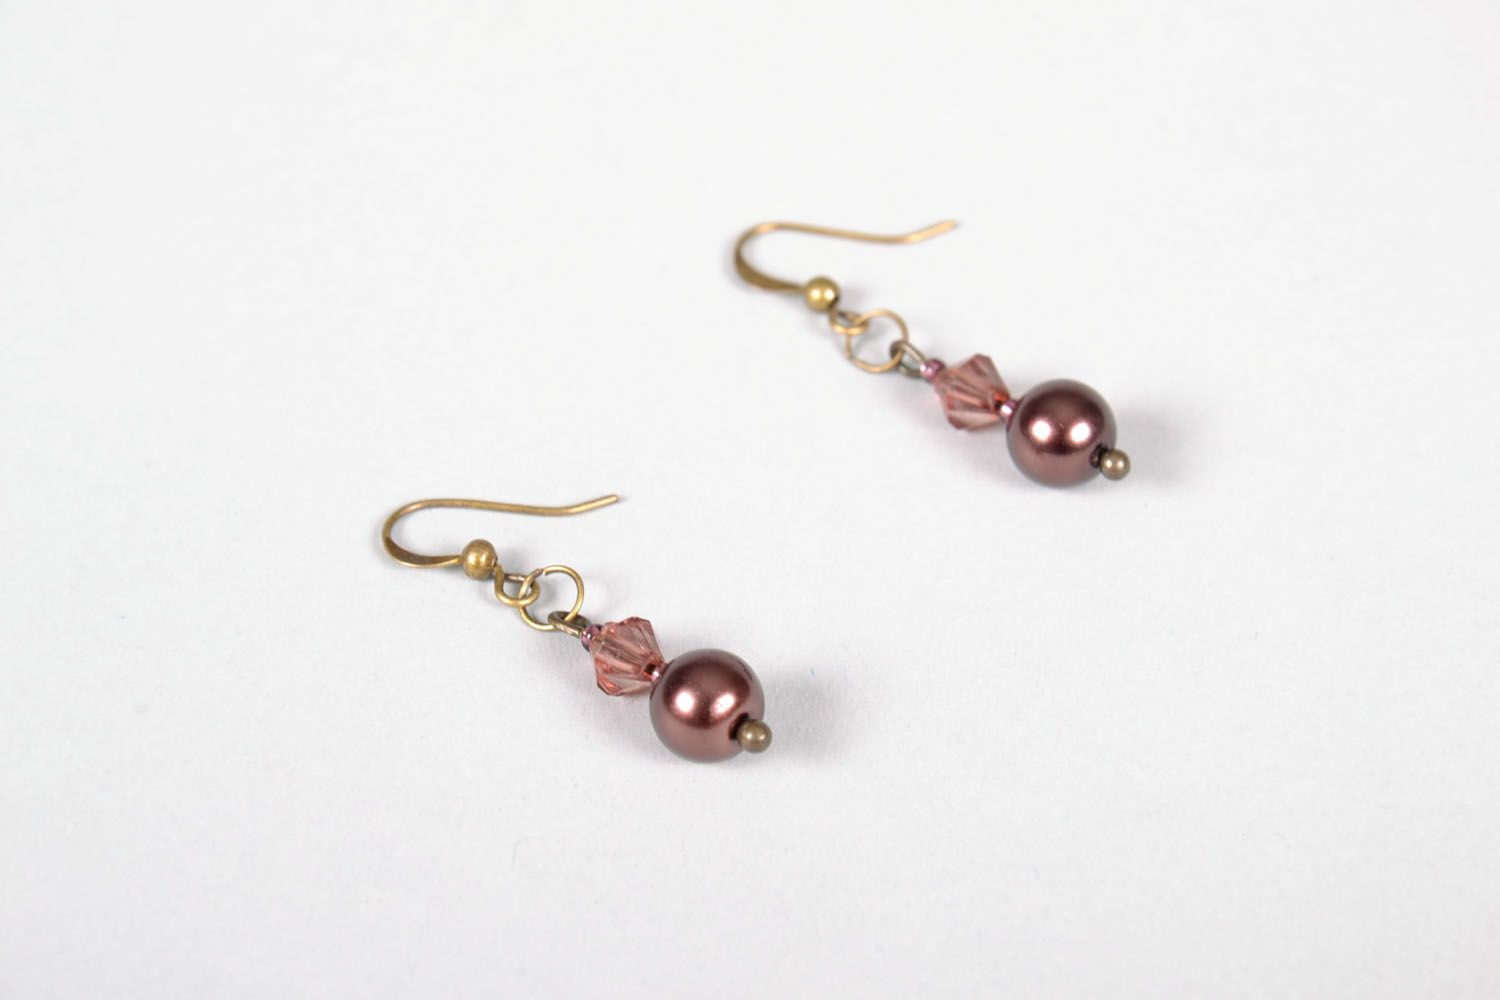 Earrings with beads photo 3